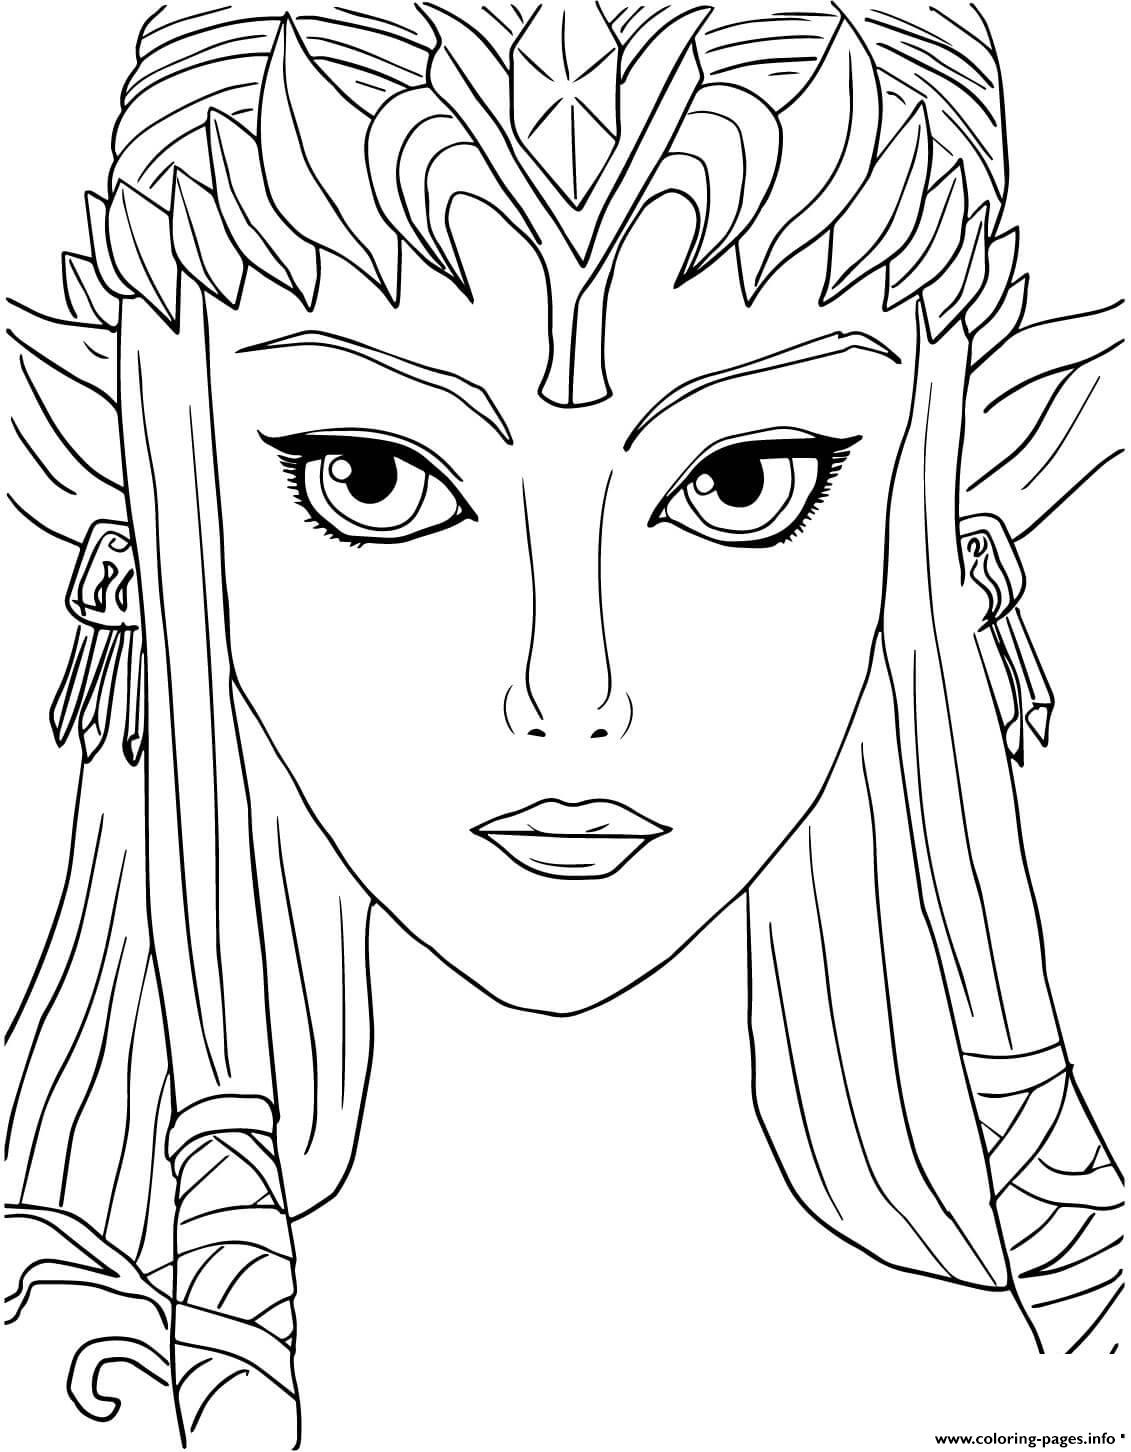 legend of zelda twilight princess coloring pages - Twilight Coloring Pages